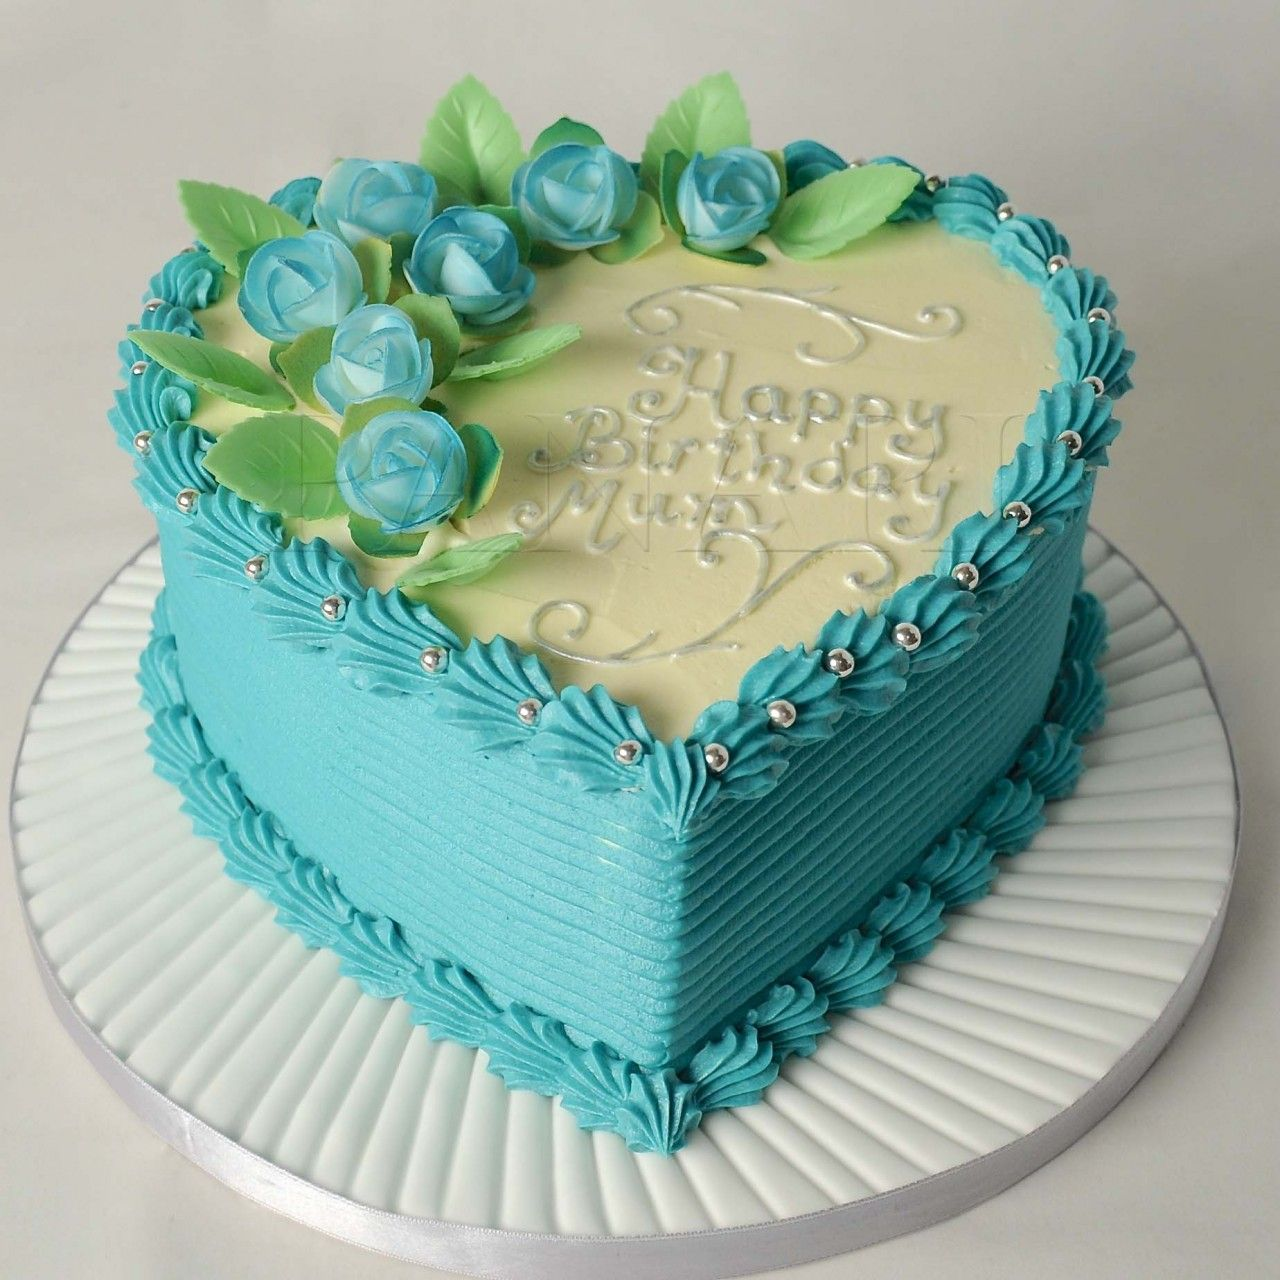 Heart Shape Cake Decoration At Home : heart shaped cakes pictures - Google Search Cake ...